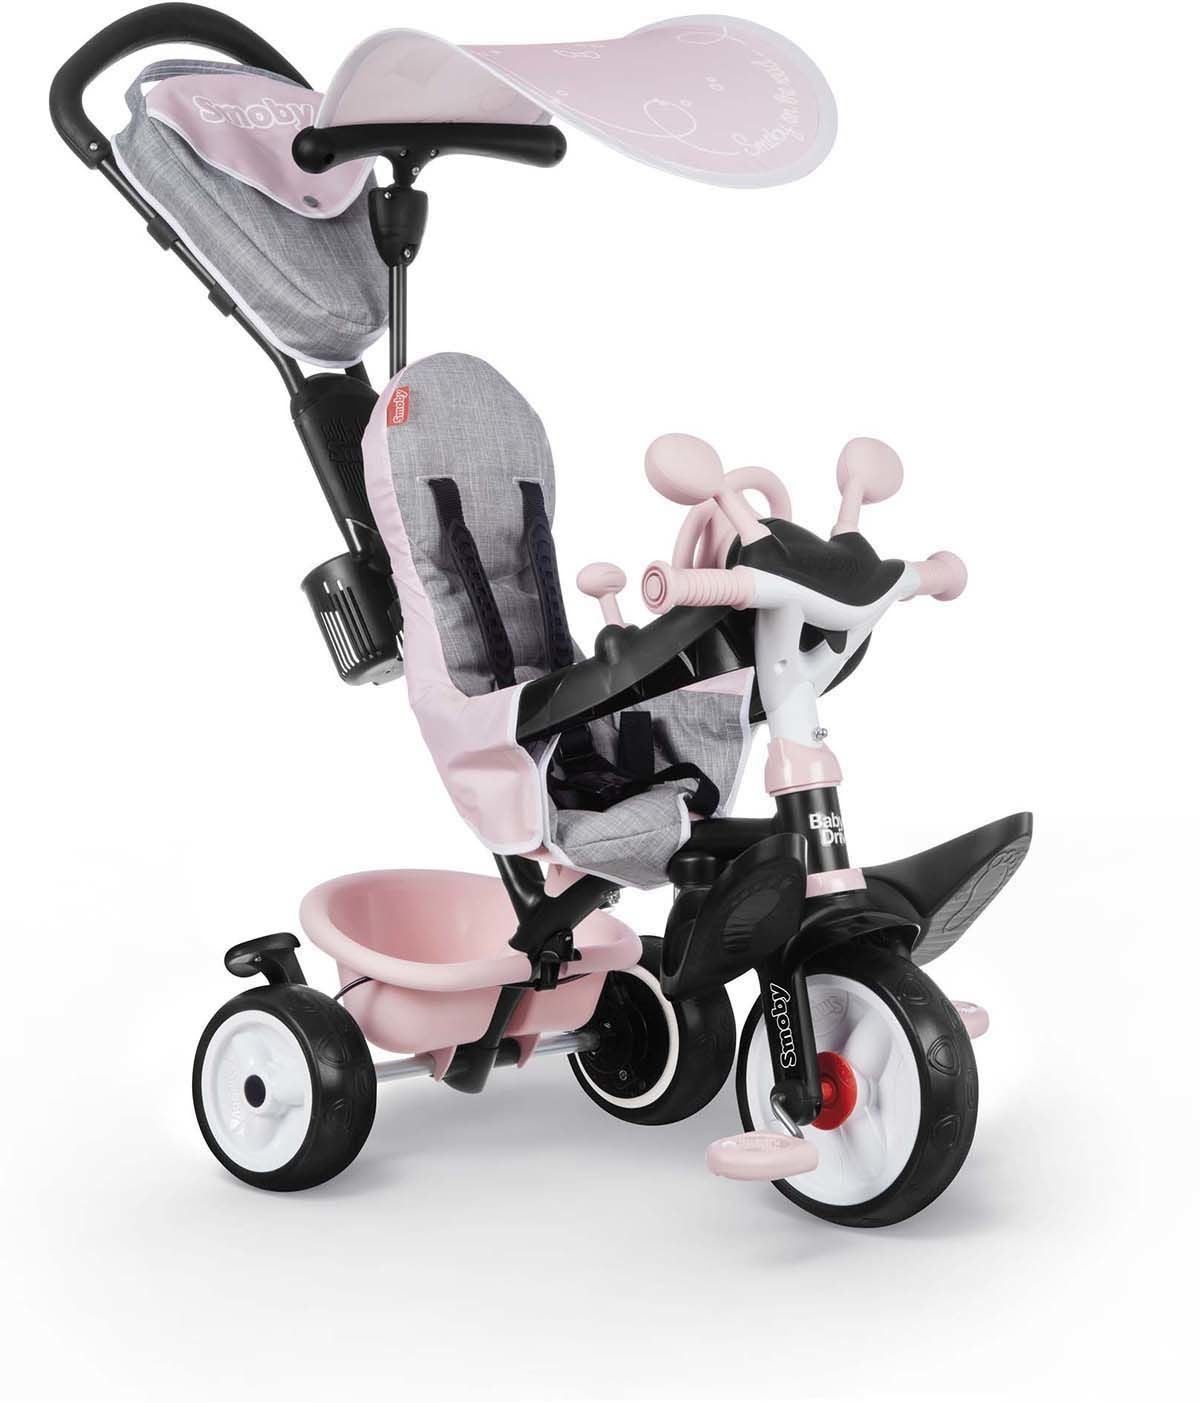 Smoby Trehjuling Baby Driver Plus, Pink